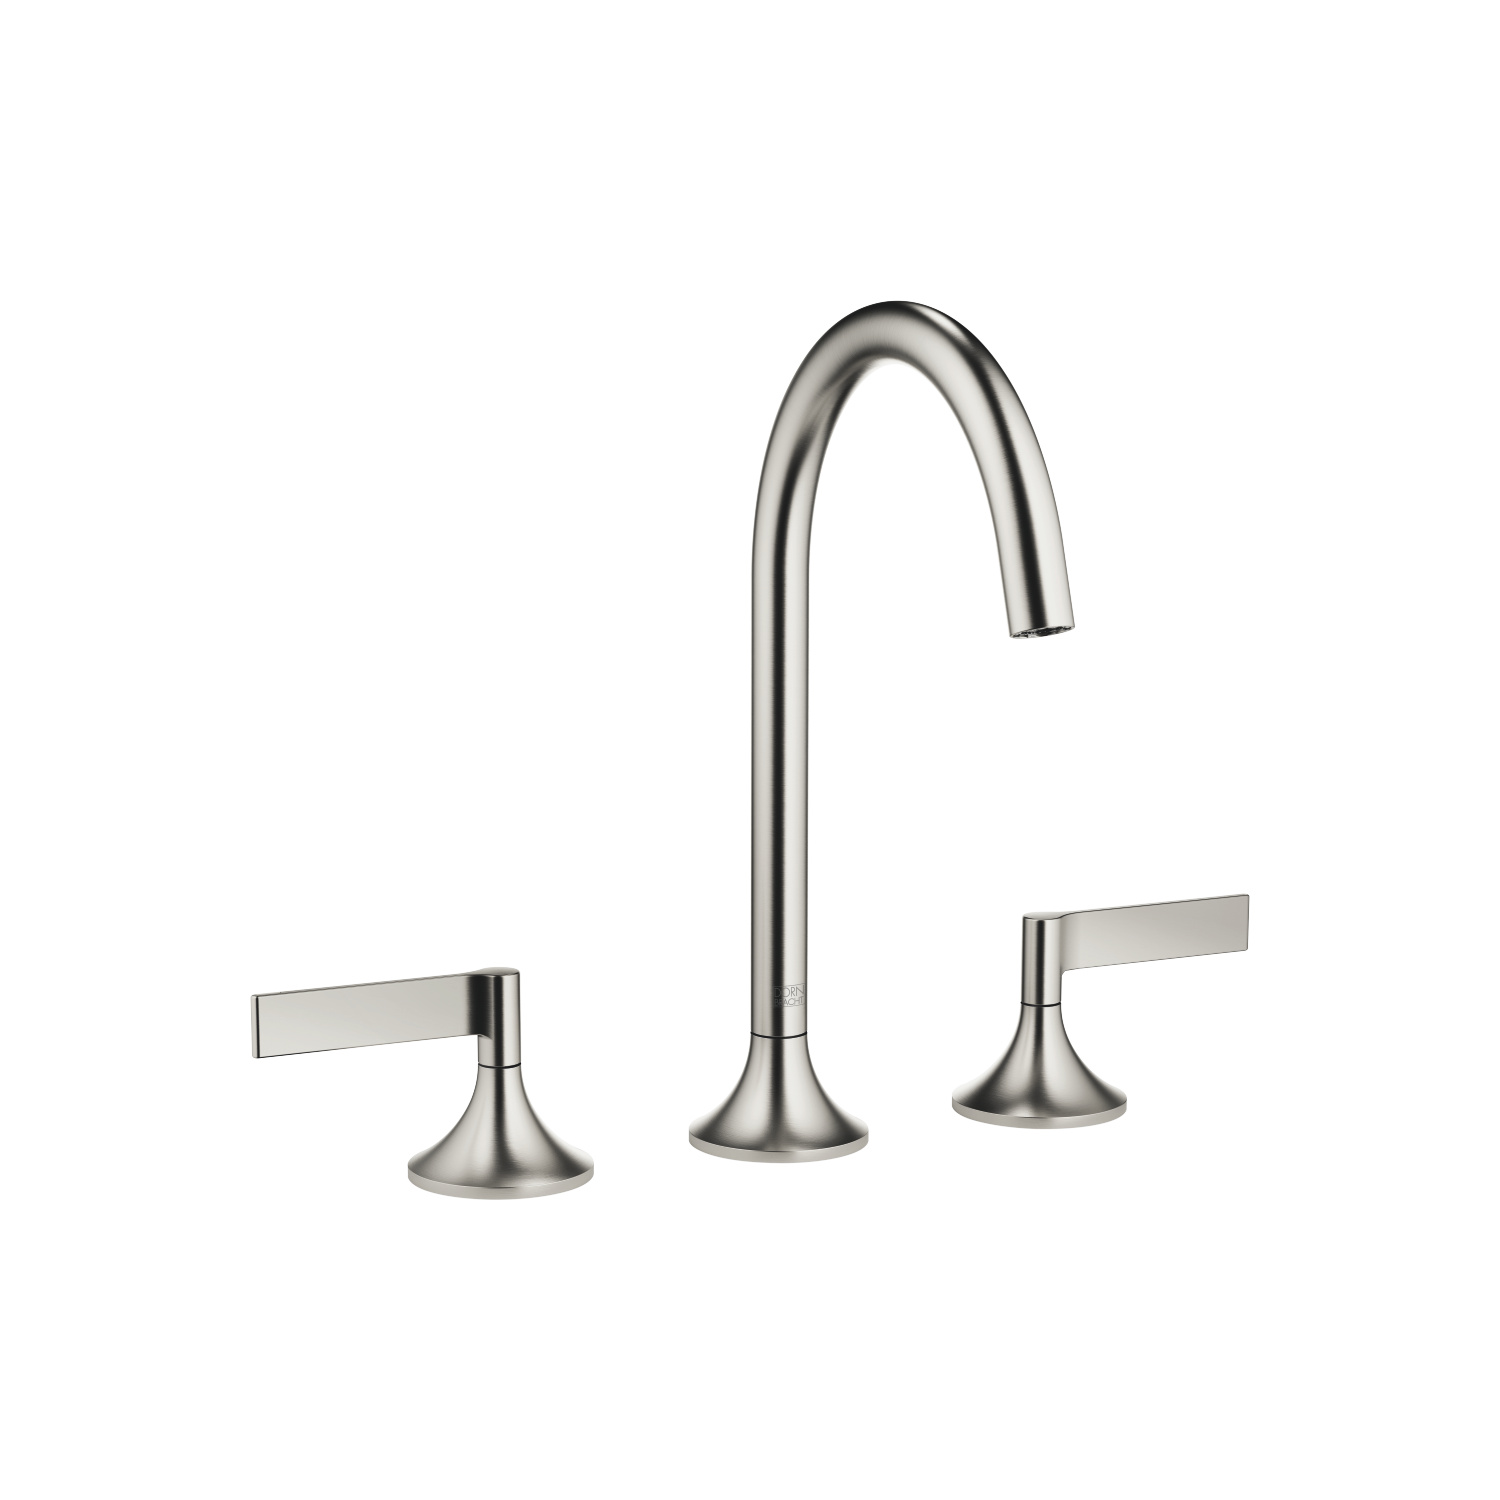 Three-hole basin mixer with pop-up waste - platinum matt - 20 713 819-06